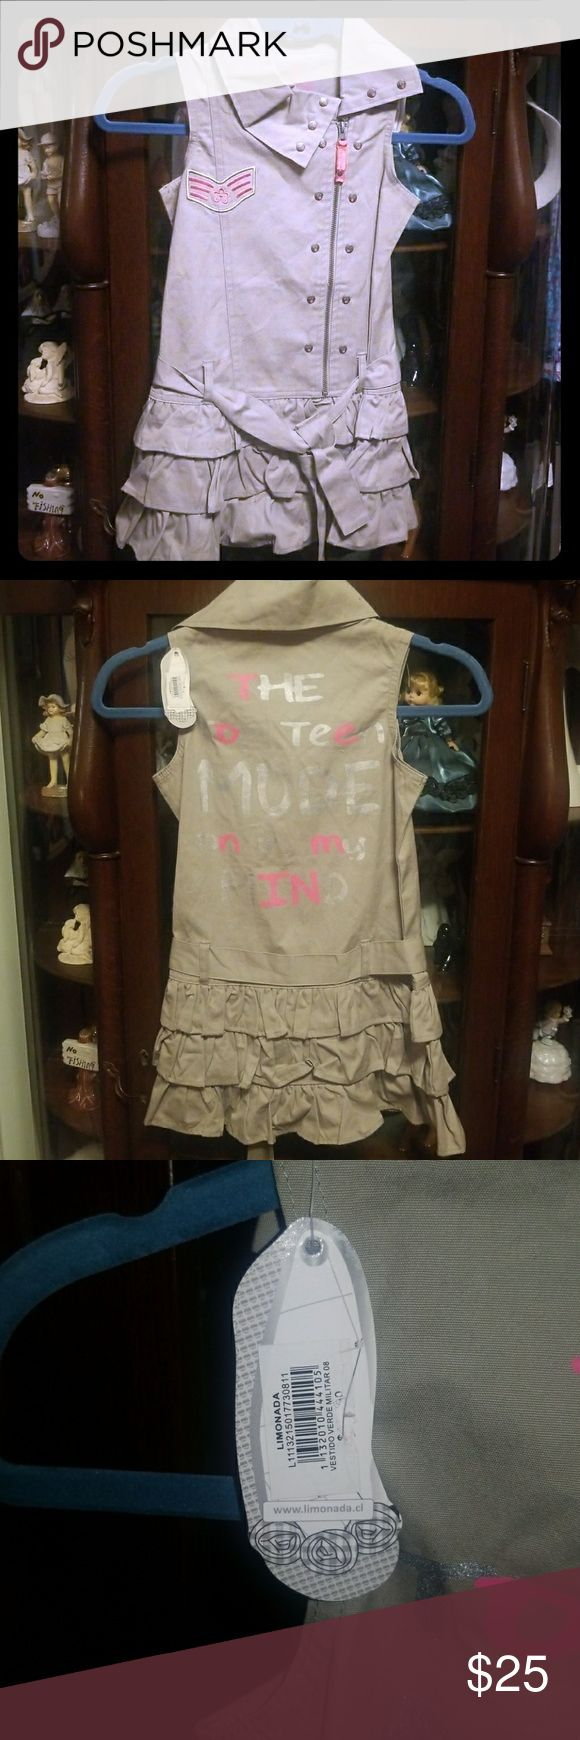 "Girls khaki Limonada Dress ADORABLE khaki and pink army themed dress with ruffles at the bottom and lettering on the back which reads,  "" The Top Teen Mode on in my Mind"" 🎀SUPER🎀cute and girly, and can even be worn as a school uniform for those with dress codes like here in Florida.  🎀NWT, NEVER worn🎀 🎀Size 8 and comes just below the knees, or 27 inches in length/ top of collar to the very last bottom ruffle👗👗 🎀11 and a half inches pit to pit. 🚭🚫Smoke free home 🚫🚭 Limonada…"